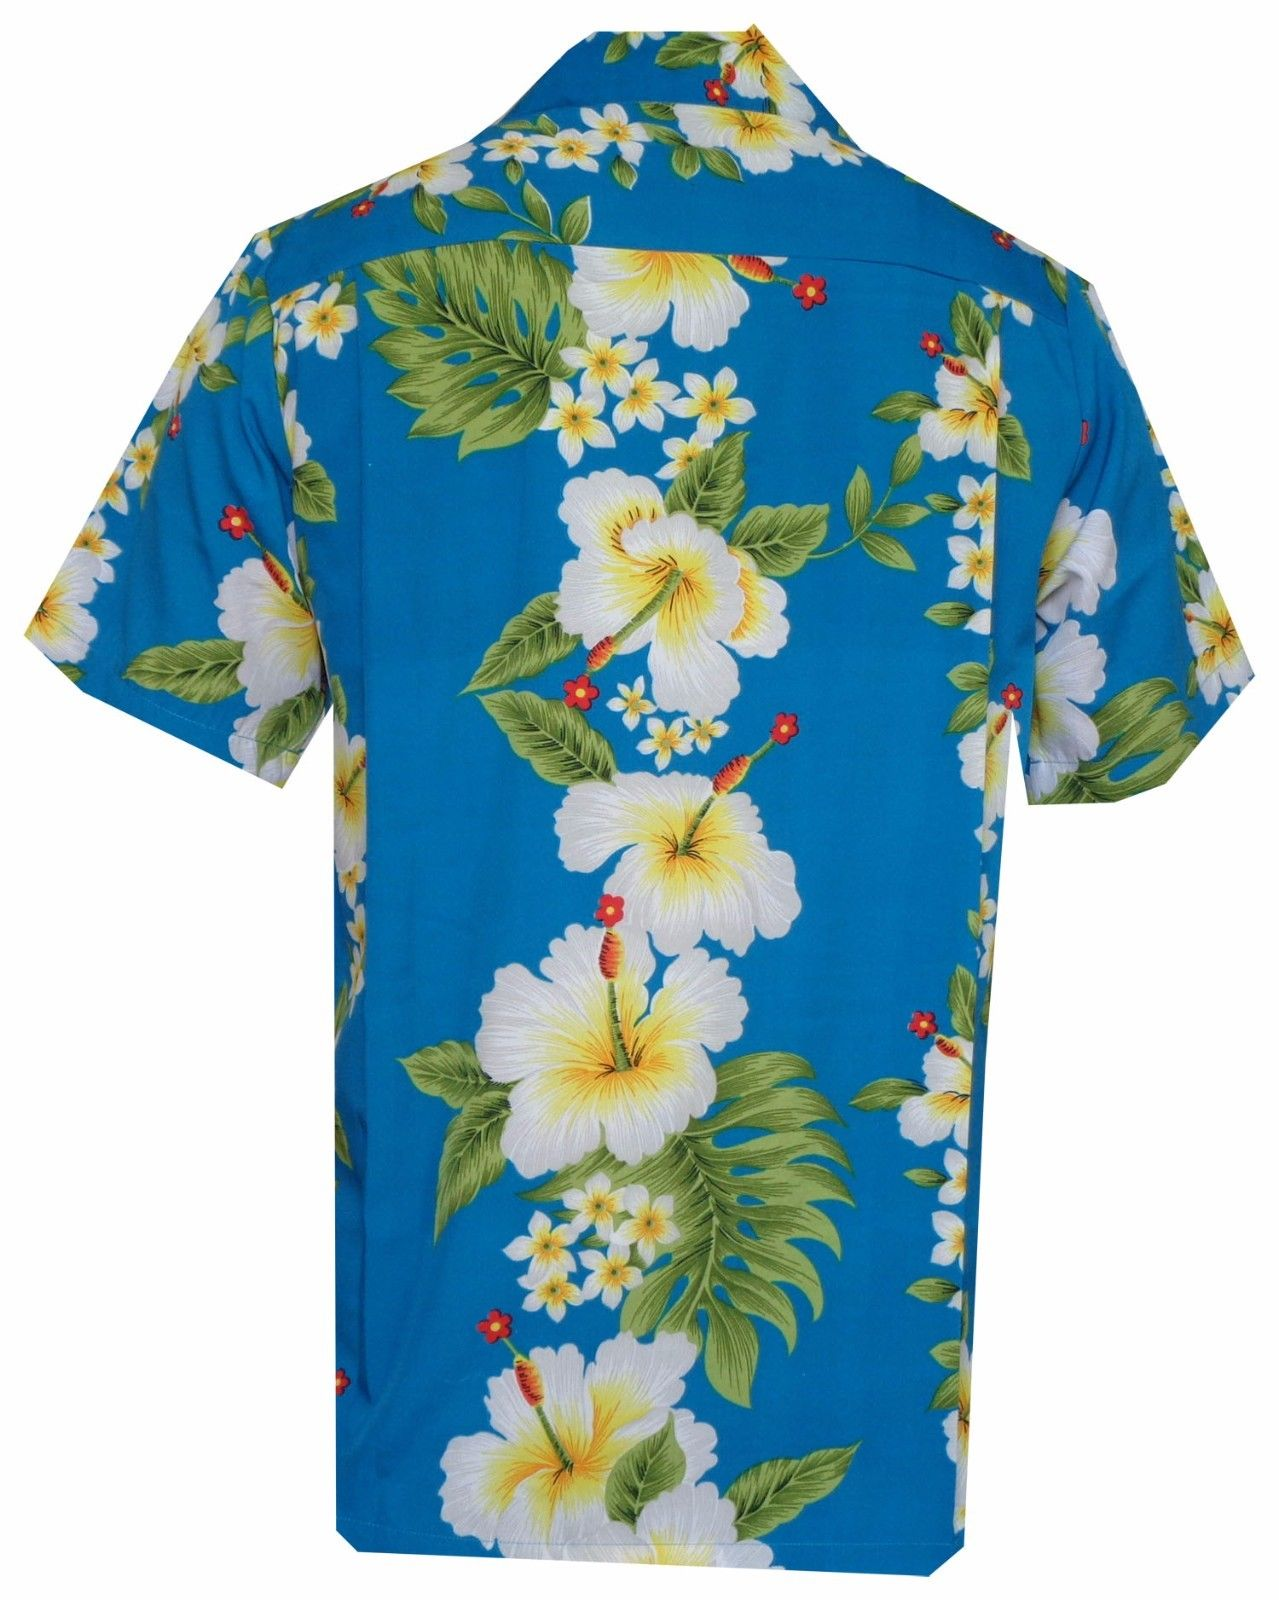 Hawaiian-Shirts-Mens-Hibiscus-Flower-Print-Beach-Party-Aloha thumbnail 4